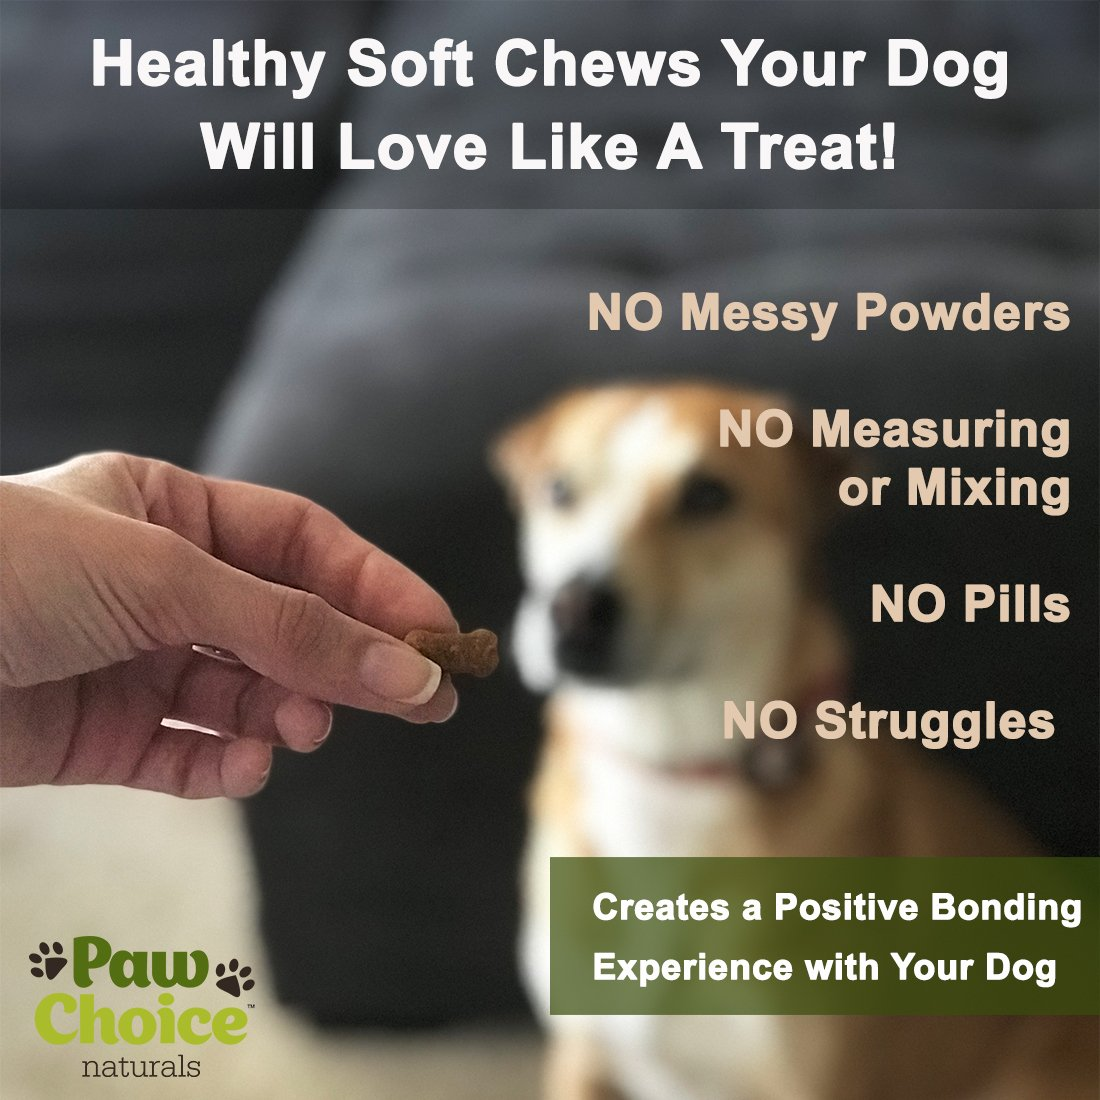 Probiotics for Dogs with Prebiotics - Daily Chews for Digestion, Regularity, Diarrhea Relief, Plus Supports Immune System and Health - Natural Supplement and Treat Made in USA by Paw Choice (Image #3)